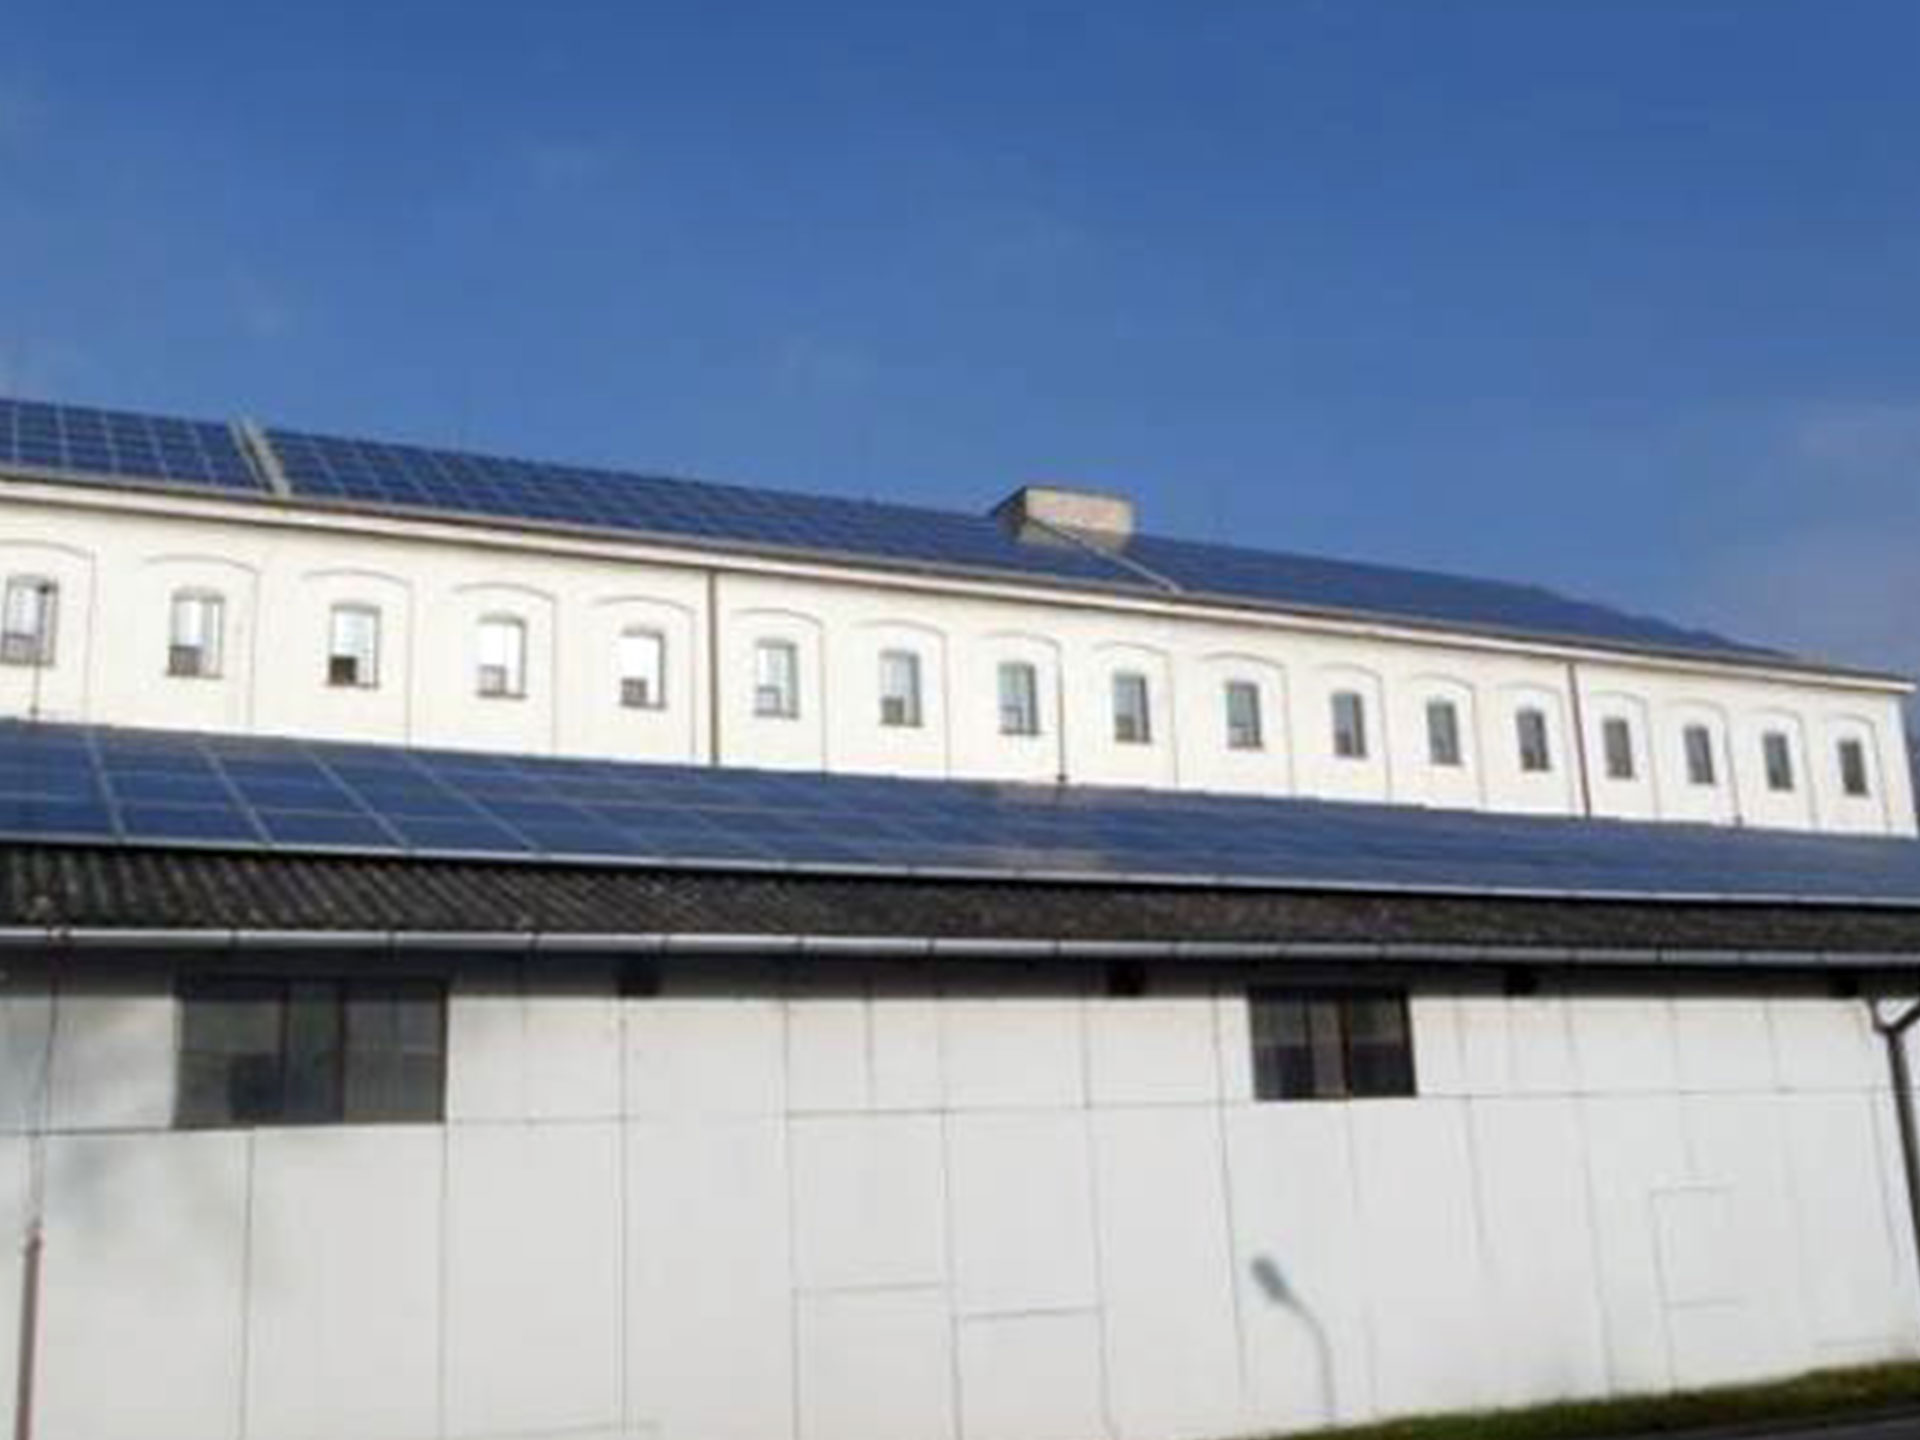 Production plant Hodonín (CR) - Installation of photovoltaic power plants with an output of 230 kW.